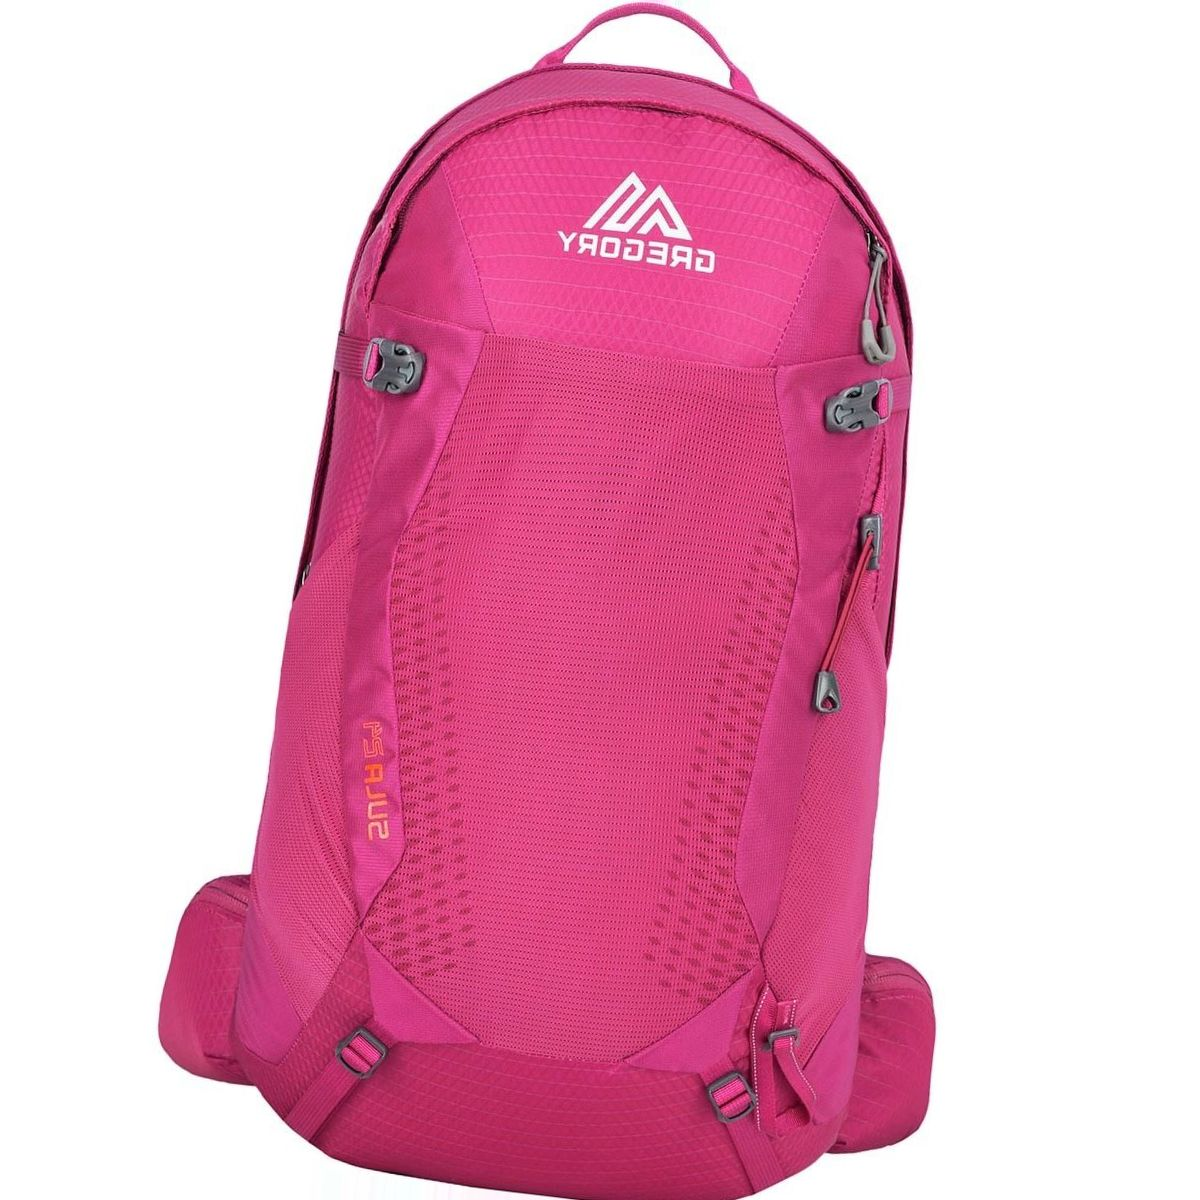 Gregory Sula 24L Backpack - Women's